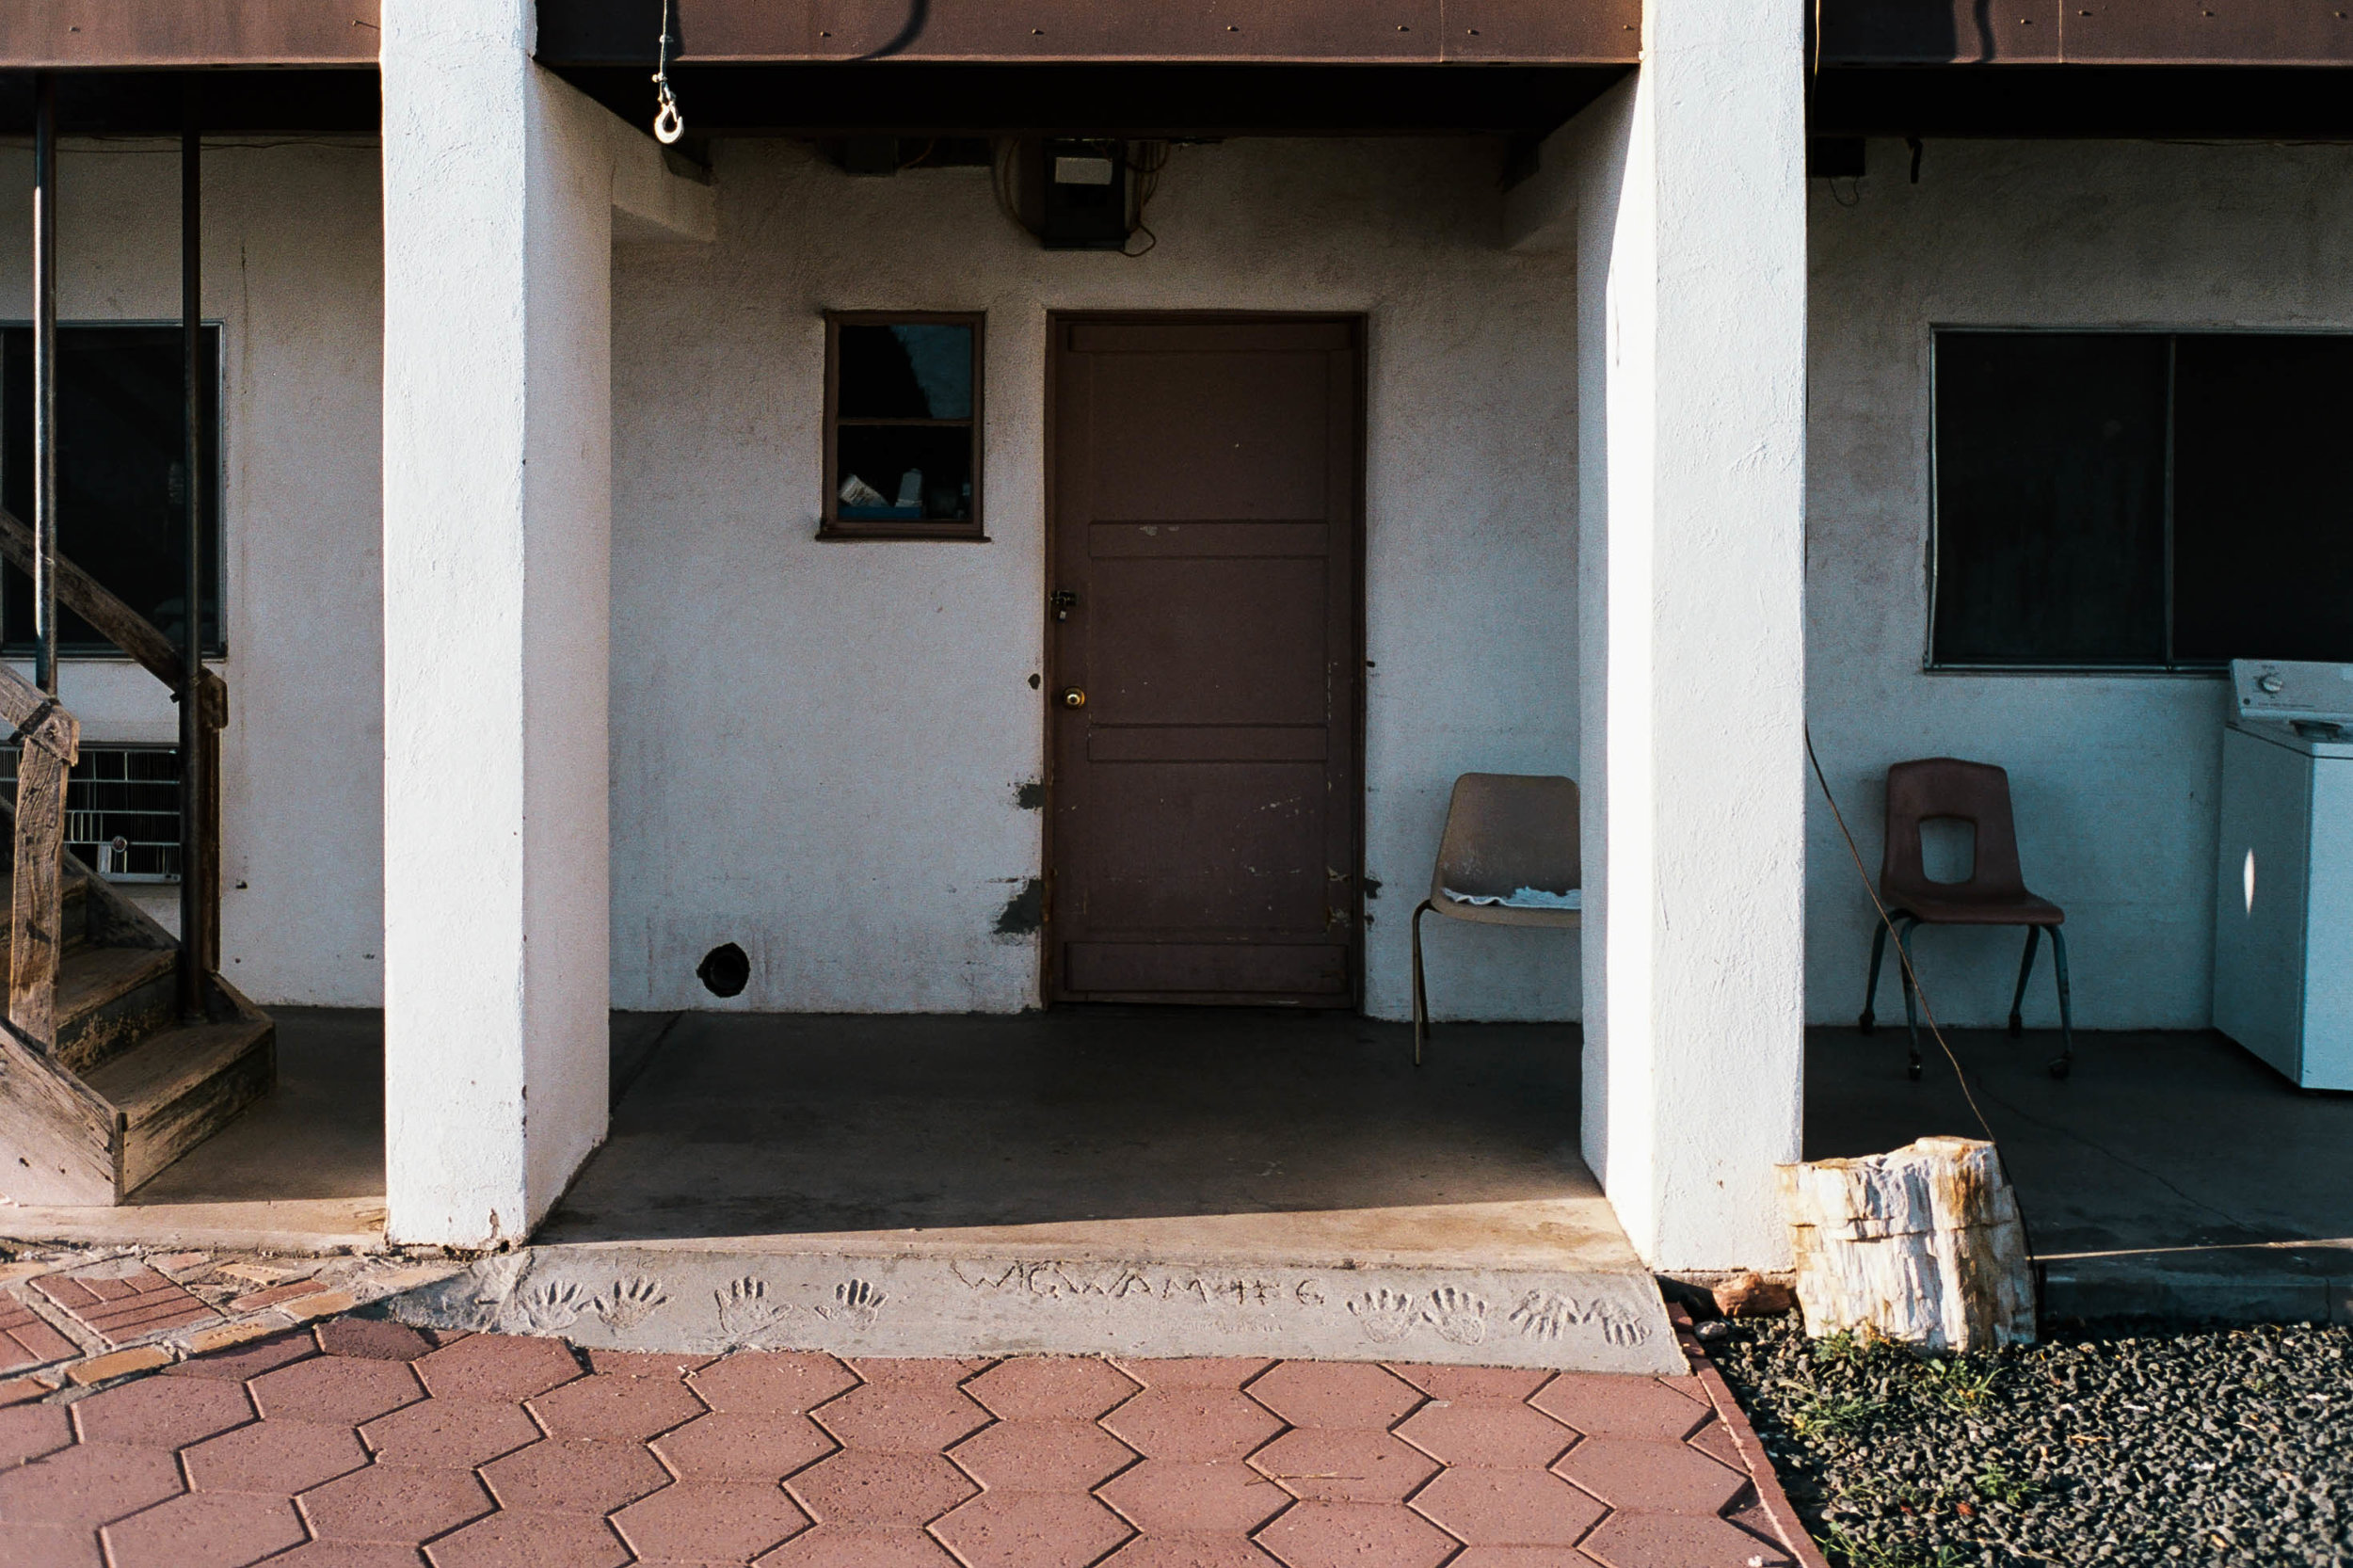 nate-matos-arizona-motel-11.jpg